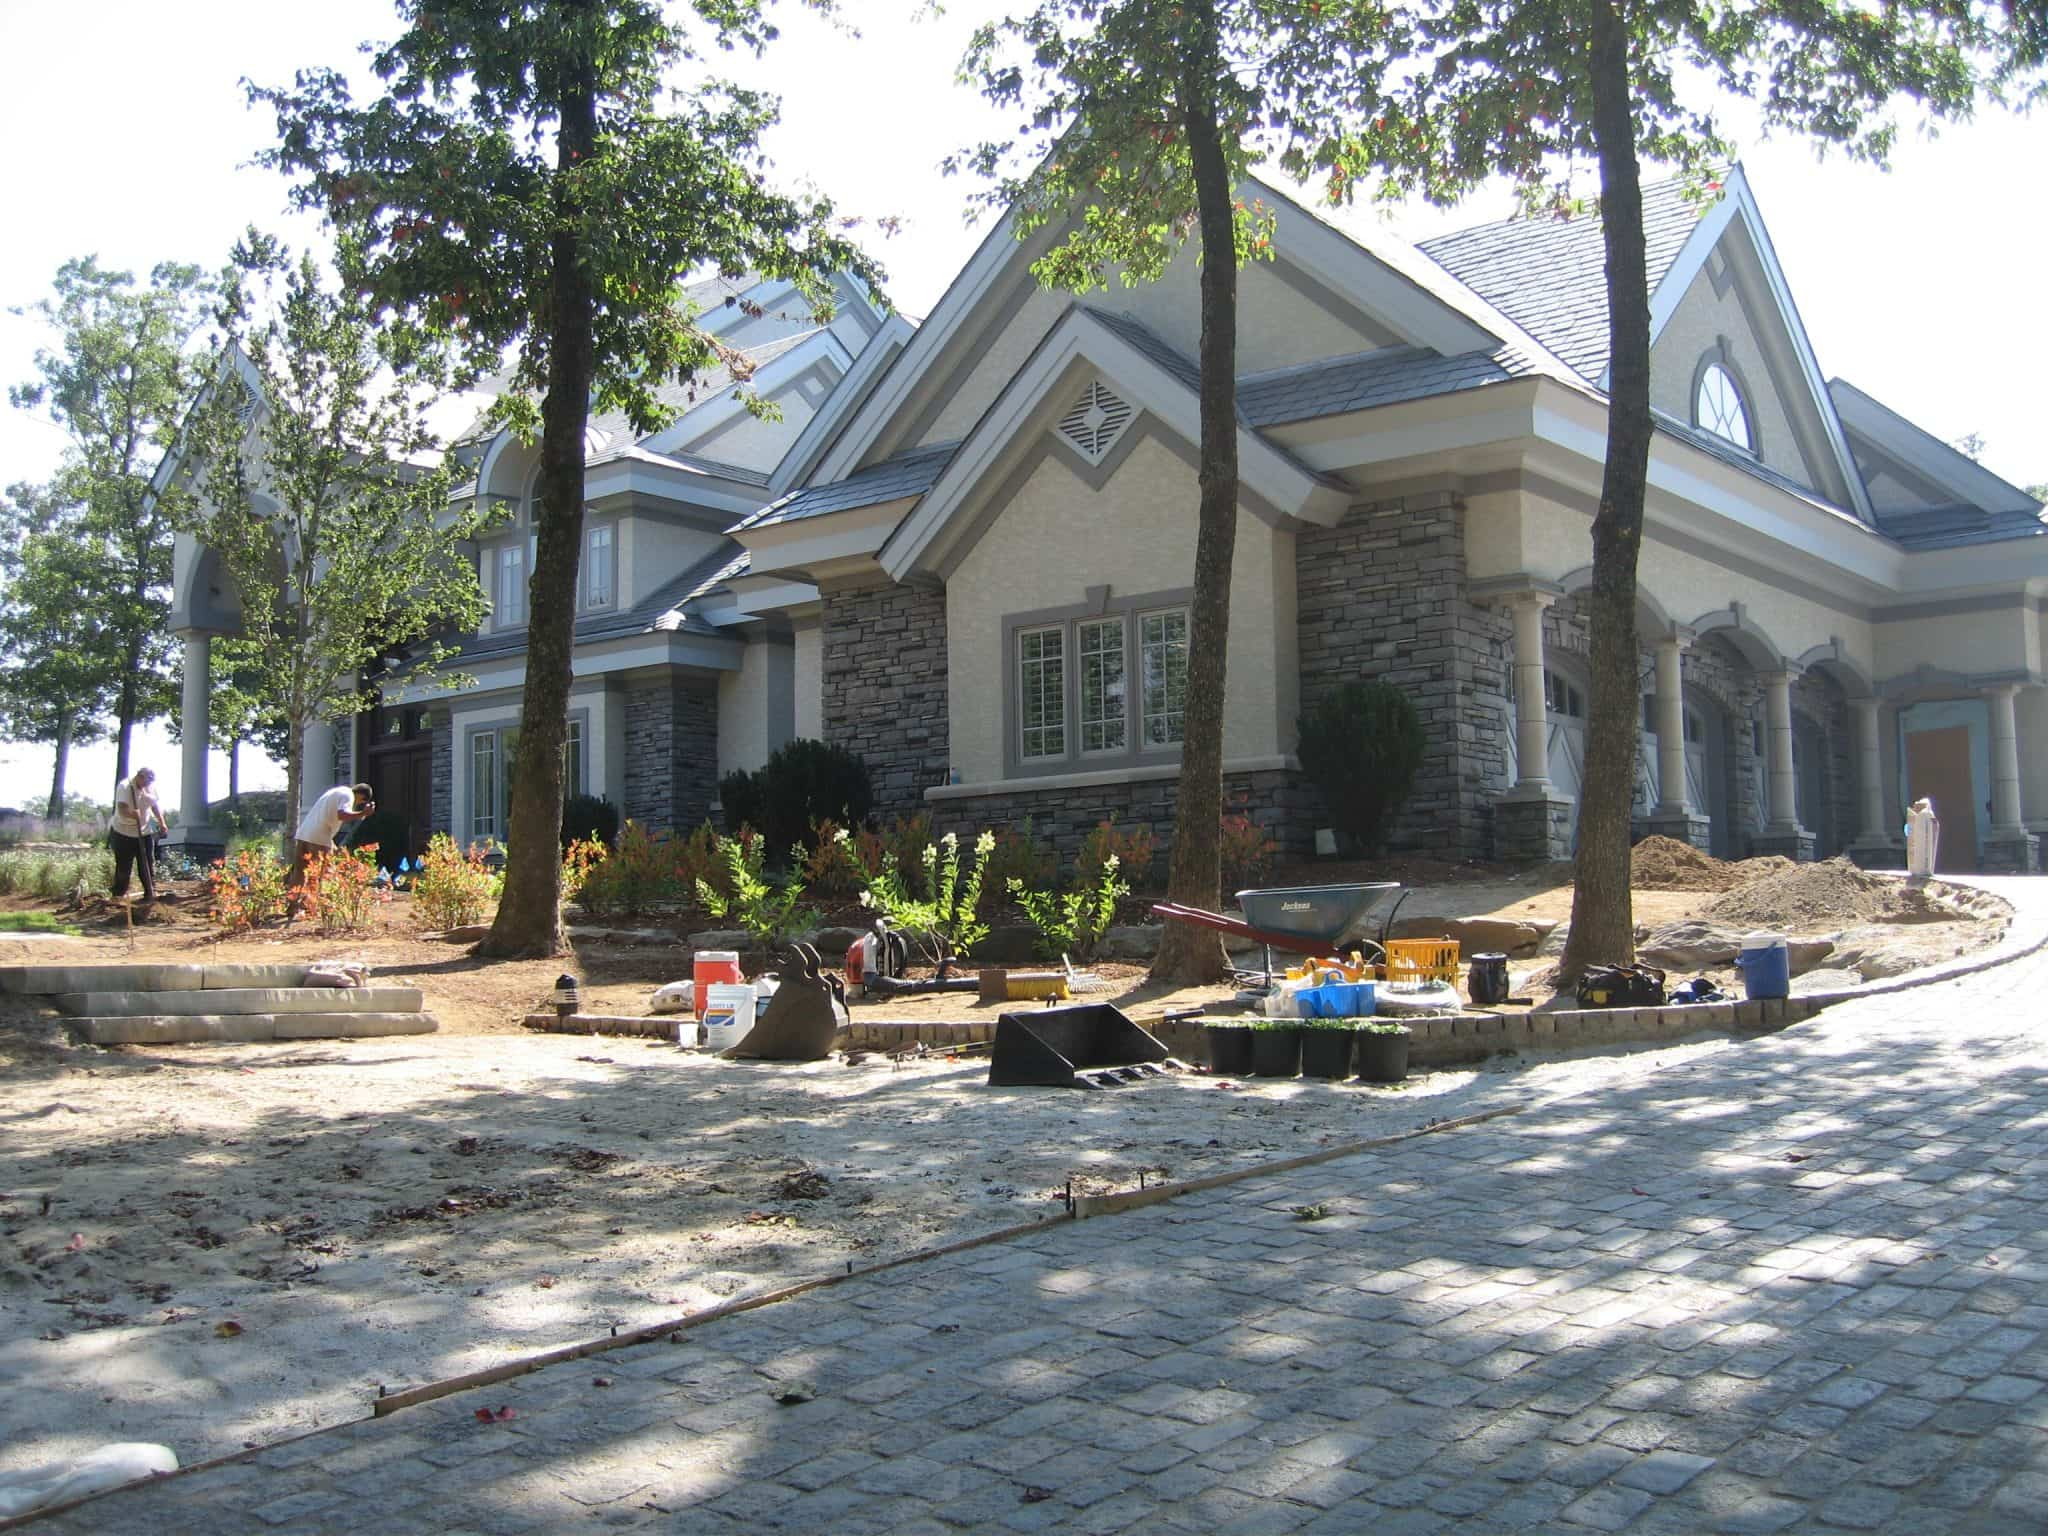 We see a house with a big yard and a driveway paved with Lake Street Cobblestone with a roundabout at the top.